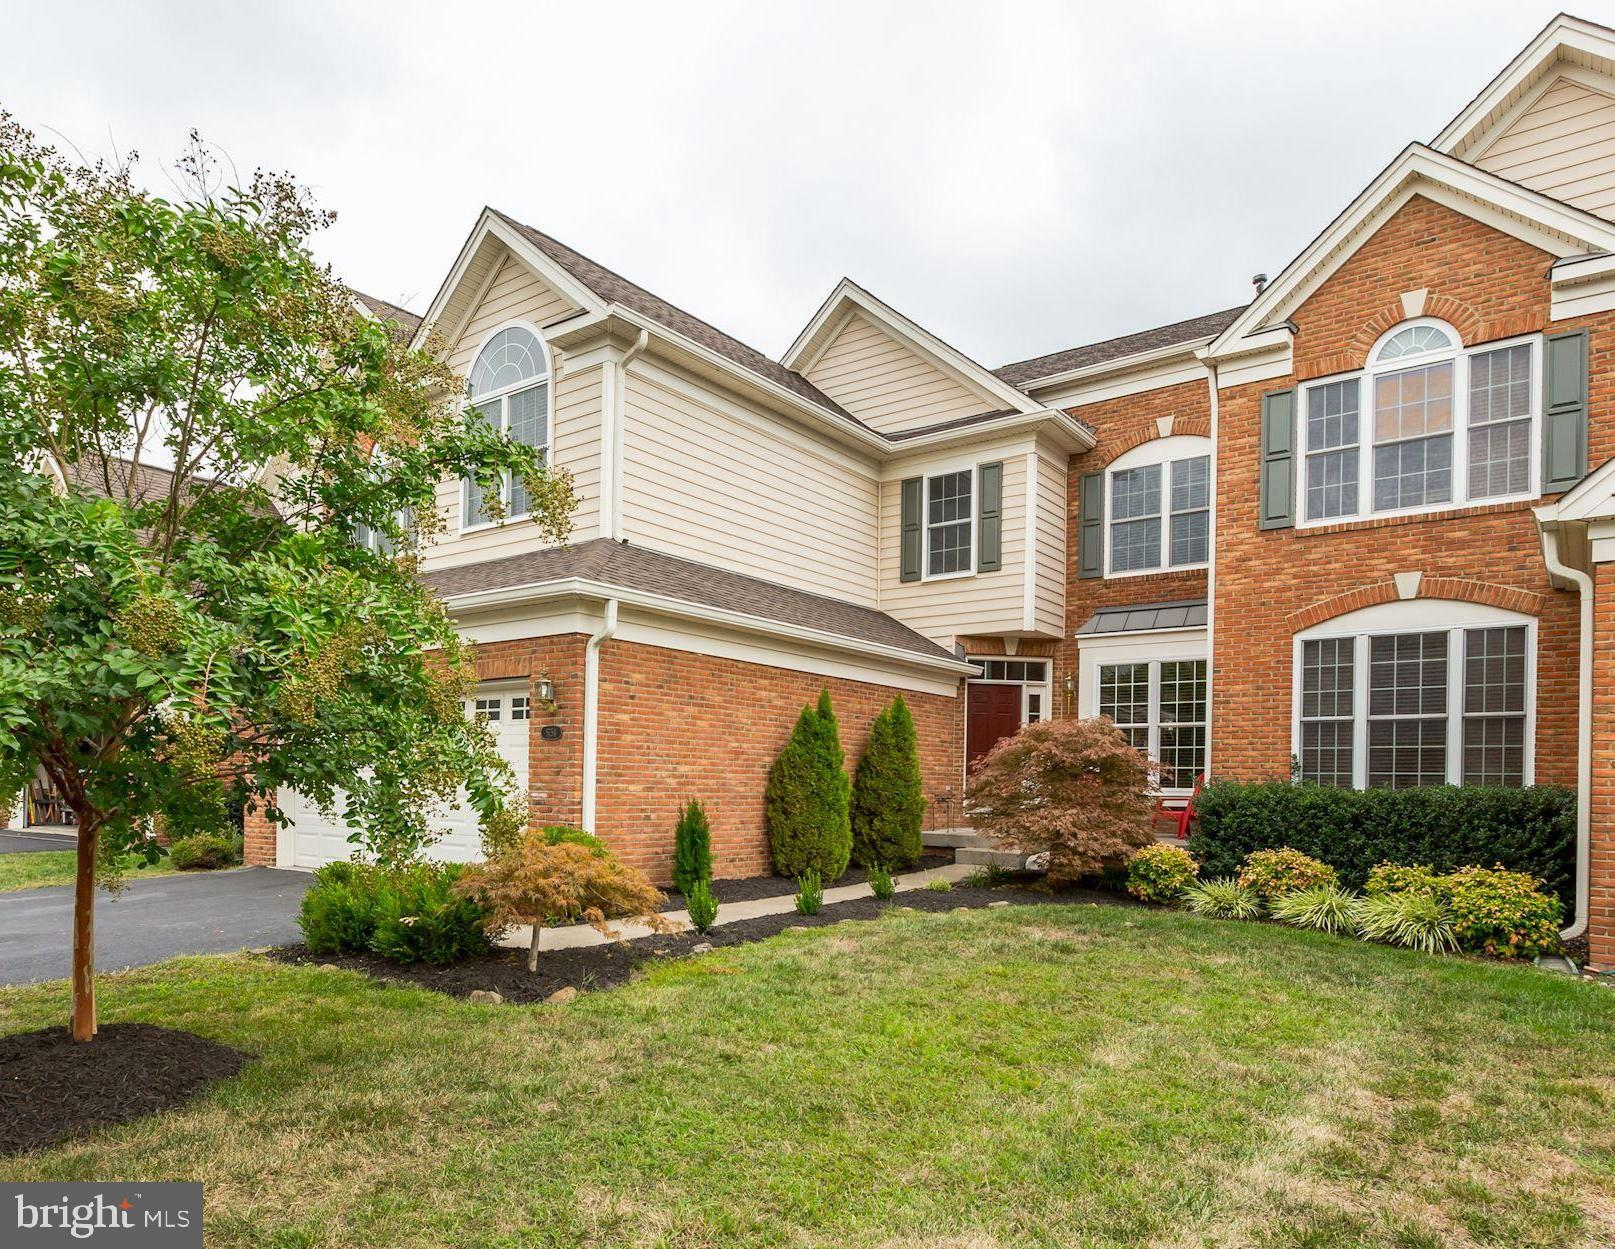 Open House 1-3 P.M. Sunday September 1st 2019-Gorgeous Attached Single Family Home in Sought After Dominion Valley Country Club-Impeccably Maintained and Upgraded Throughout-Located on a Quiet Street and backing to an Open Common area-An Extra Long Driveway and Over-sized Garage make for Ample Parking and Storage-Large Formal Spaces and a Two Story Foyer Welcome you to the Sprawling Main Level-The Interior Features Main Floor Hardwood Floors-Newly Painted Throughout with Upgraded Lighting Fixtures in all Finished Spaces-Wide Open Kitchen with Bar and Rich Cherry Cabinets-Appliances Include Double Wall Ovens, Gas Cook-top and Side-By-Side Refrigerator/Freezer-A Warm Gas Fireplace and Walls of Windows Fill the Family Room and Breakfast Room-A Spacious Mud Room with Storage Closet Welcomes You From the Garage-The Upper Level Features 4 very Large Bedrooms with Volume Ceilings-Incredible Owner's Bath Renovation That is a Must See. Huge Basement with 9-Foot Ceilings  Enjoy the Unmatched Amenities of Dominion Valley with Pools, Tennis and Basketball Courts, Miles of Trails, and Much More-The Security of a Gated Community and the Convenience of Shopping and Major Commuter Routes just Minutes Away!